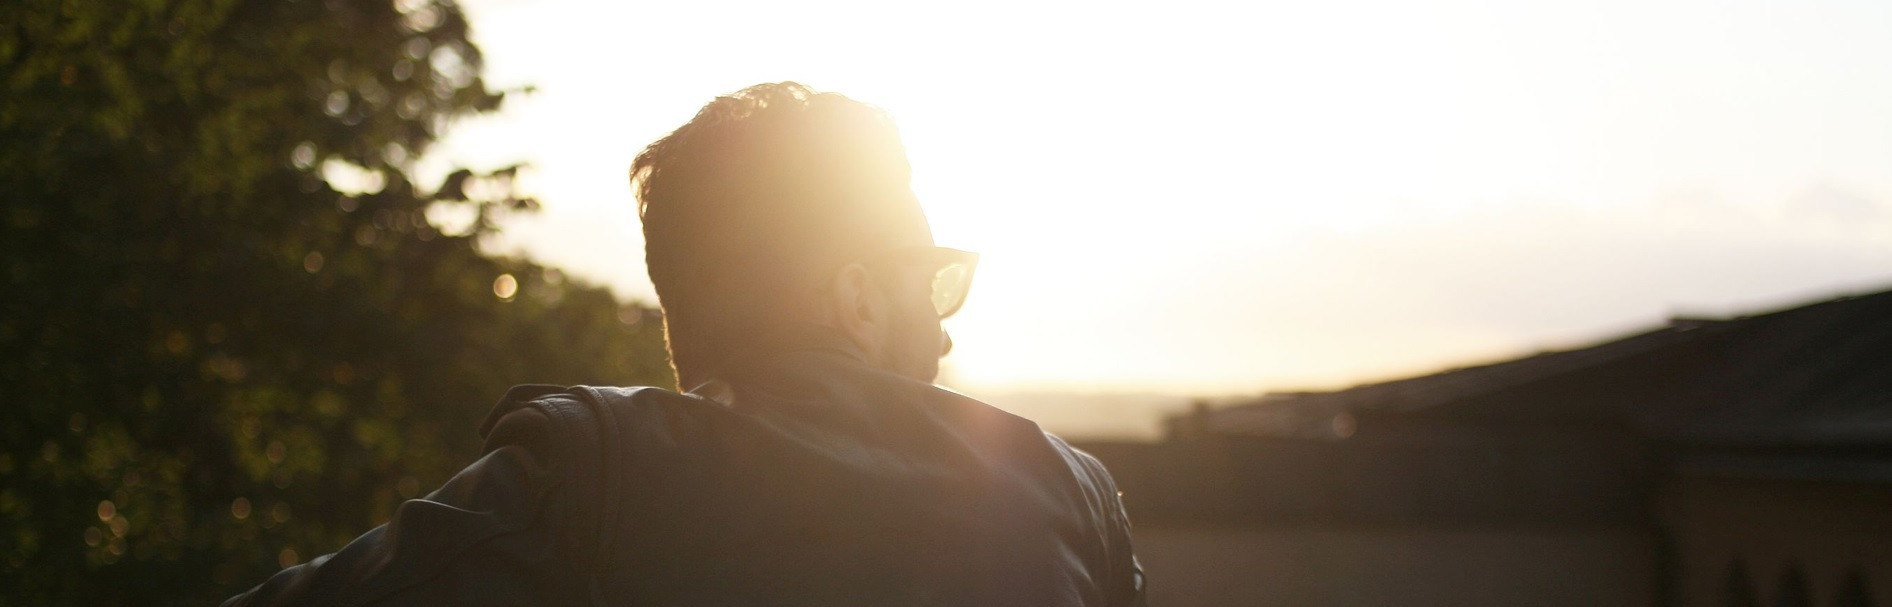 man with sunglasses in the sun